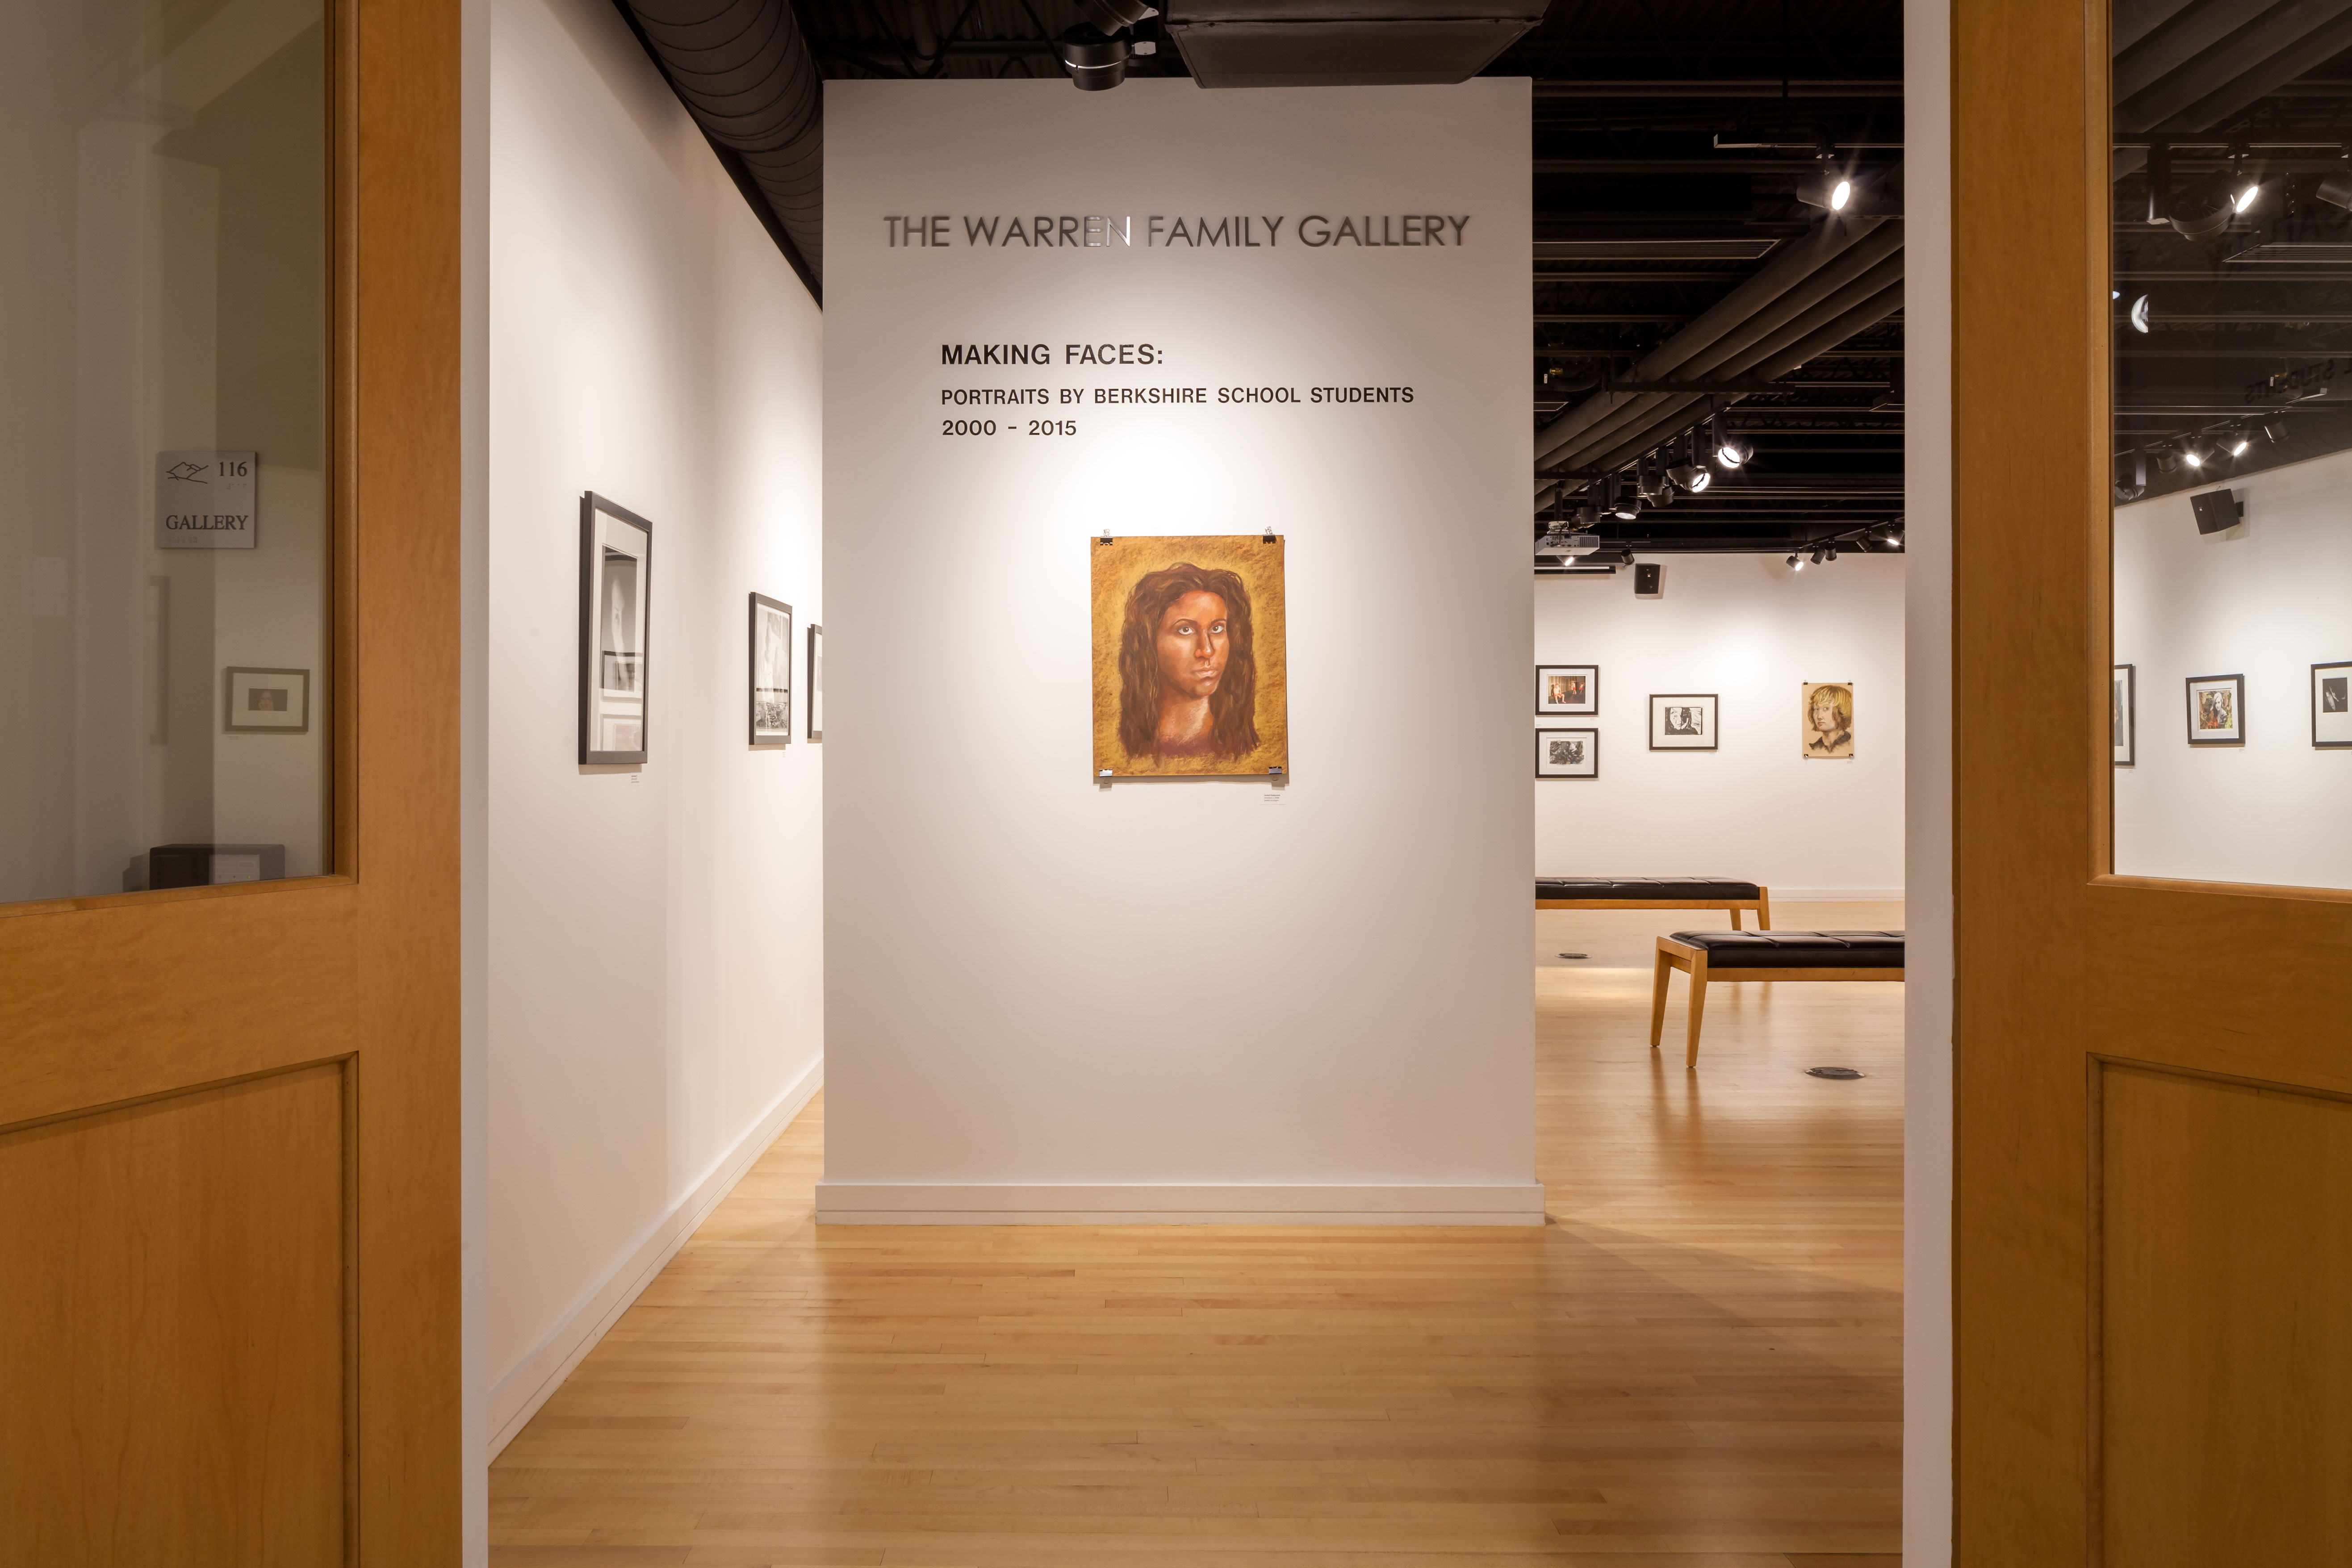 The entrance to the art gallery with open wood doors white walls, and a large freestanding wall with a student's drawing of a woman on it.